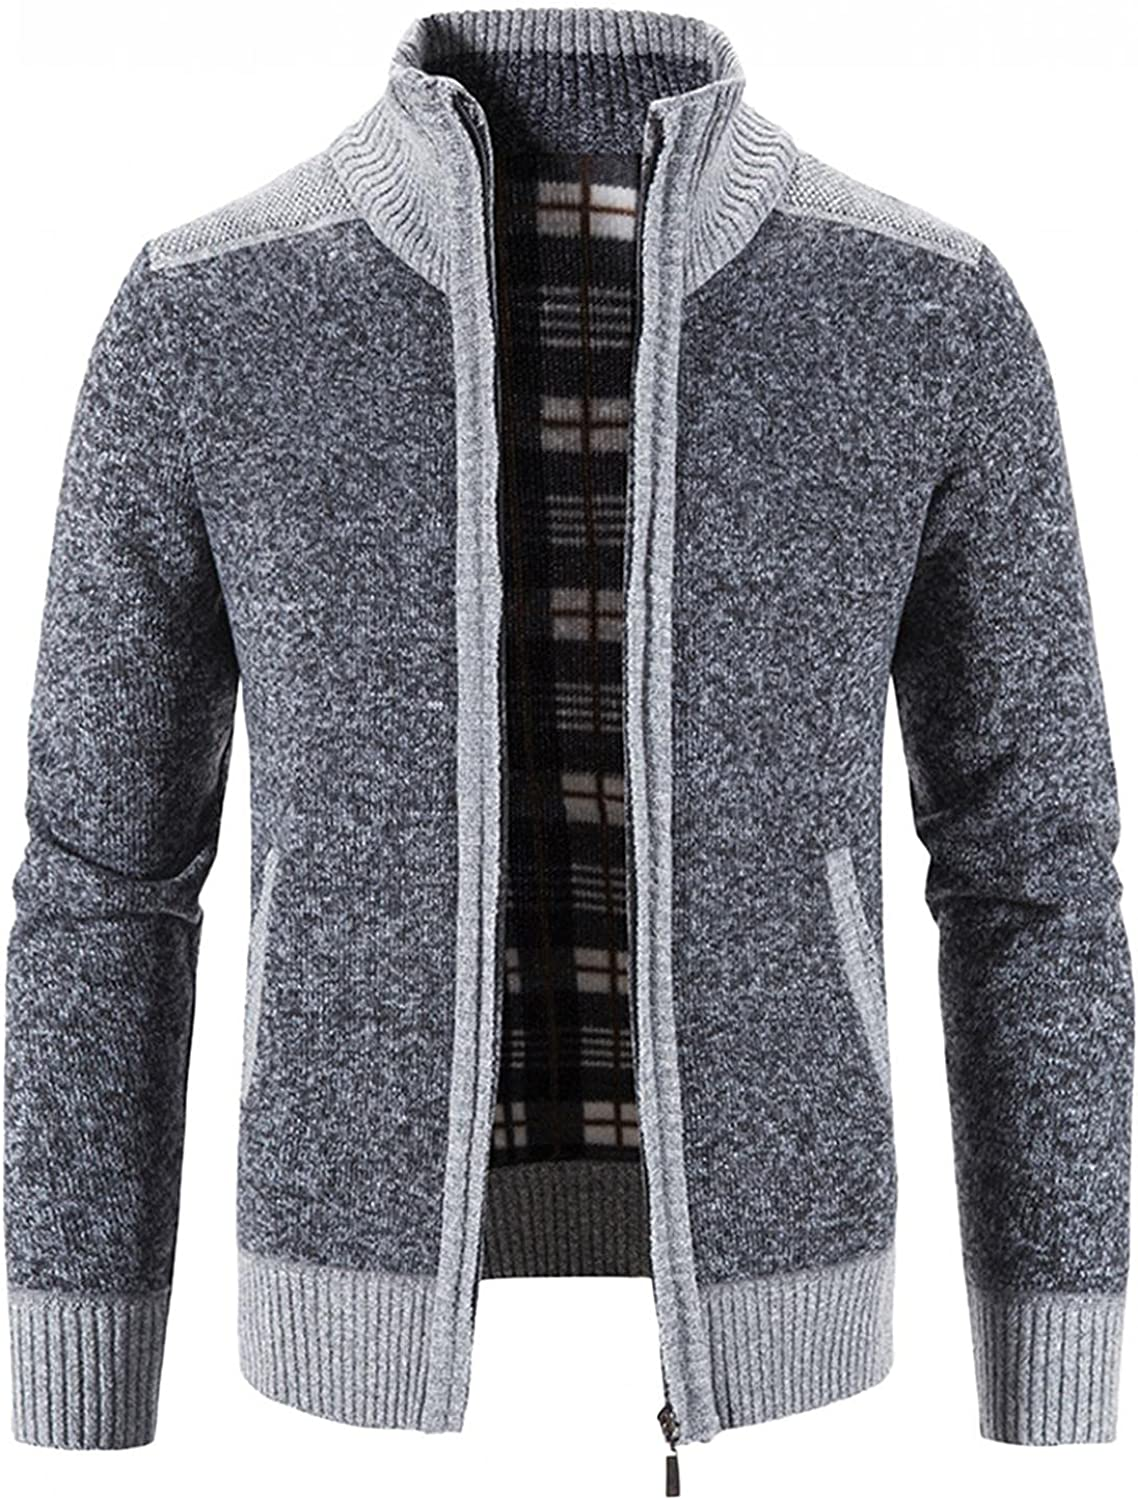 Aayomet Men's Fashion Cardigan Winter Warm Patchwork Zipper Long Sleeve Stand Collar Casual Pullover Tops Blouses Coat